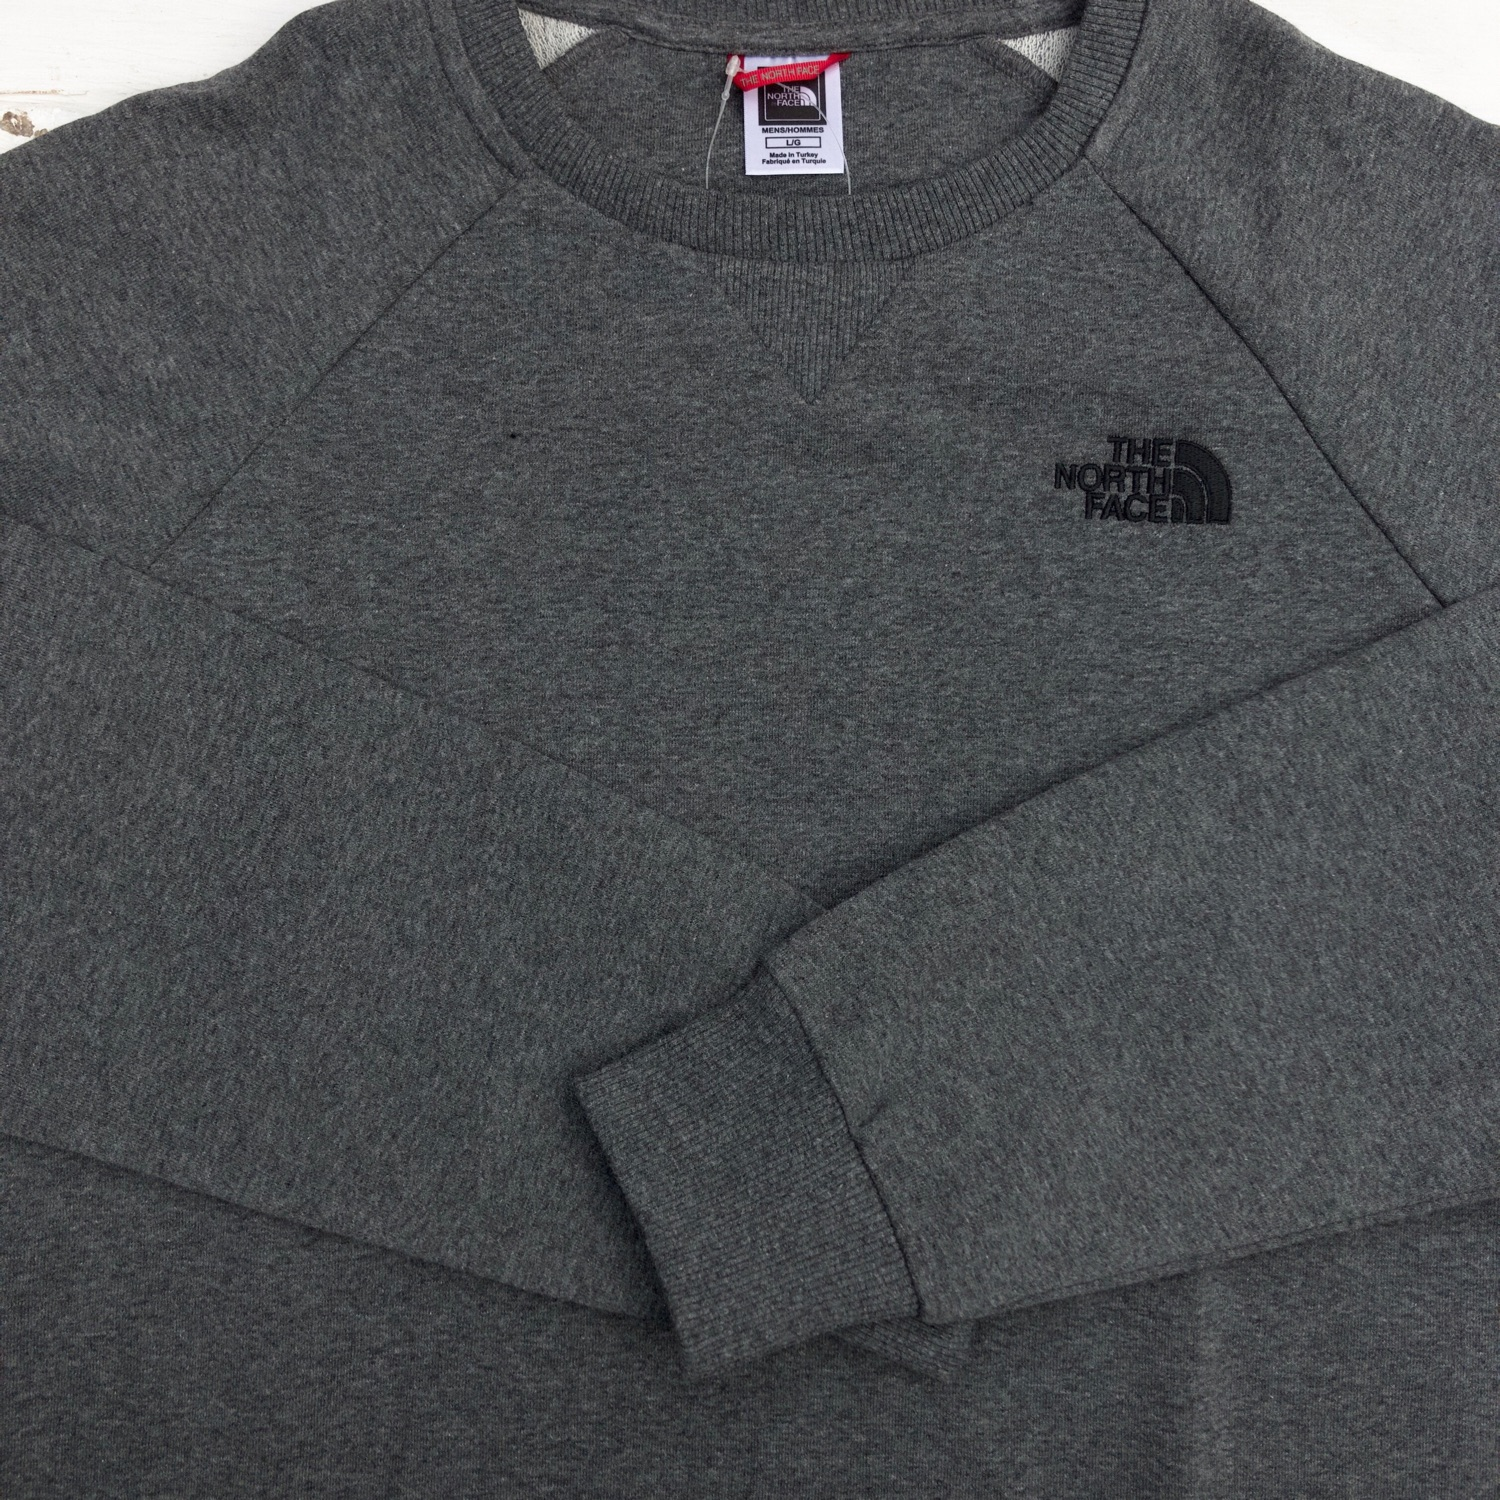 Brand New Grey The North Face Sweater / Jumper